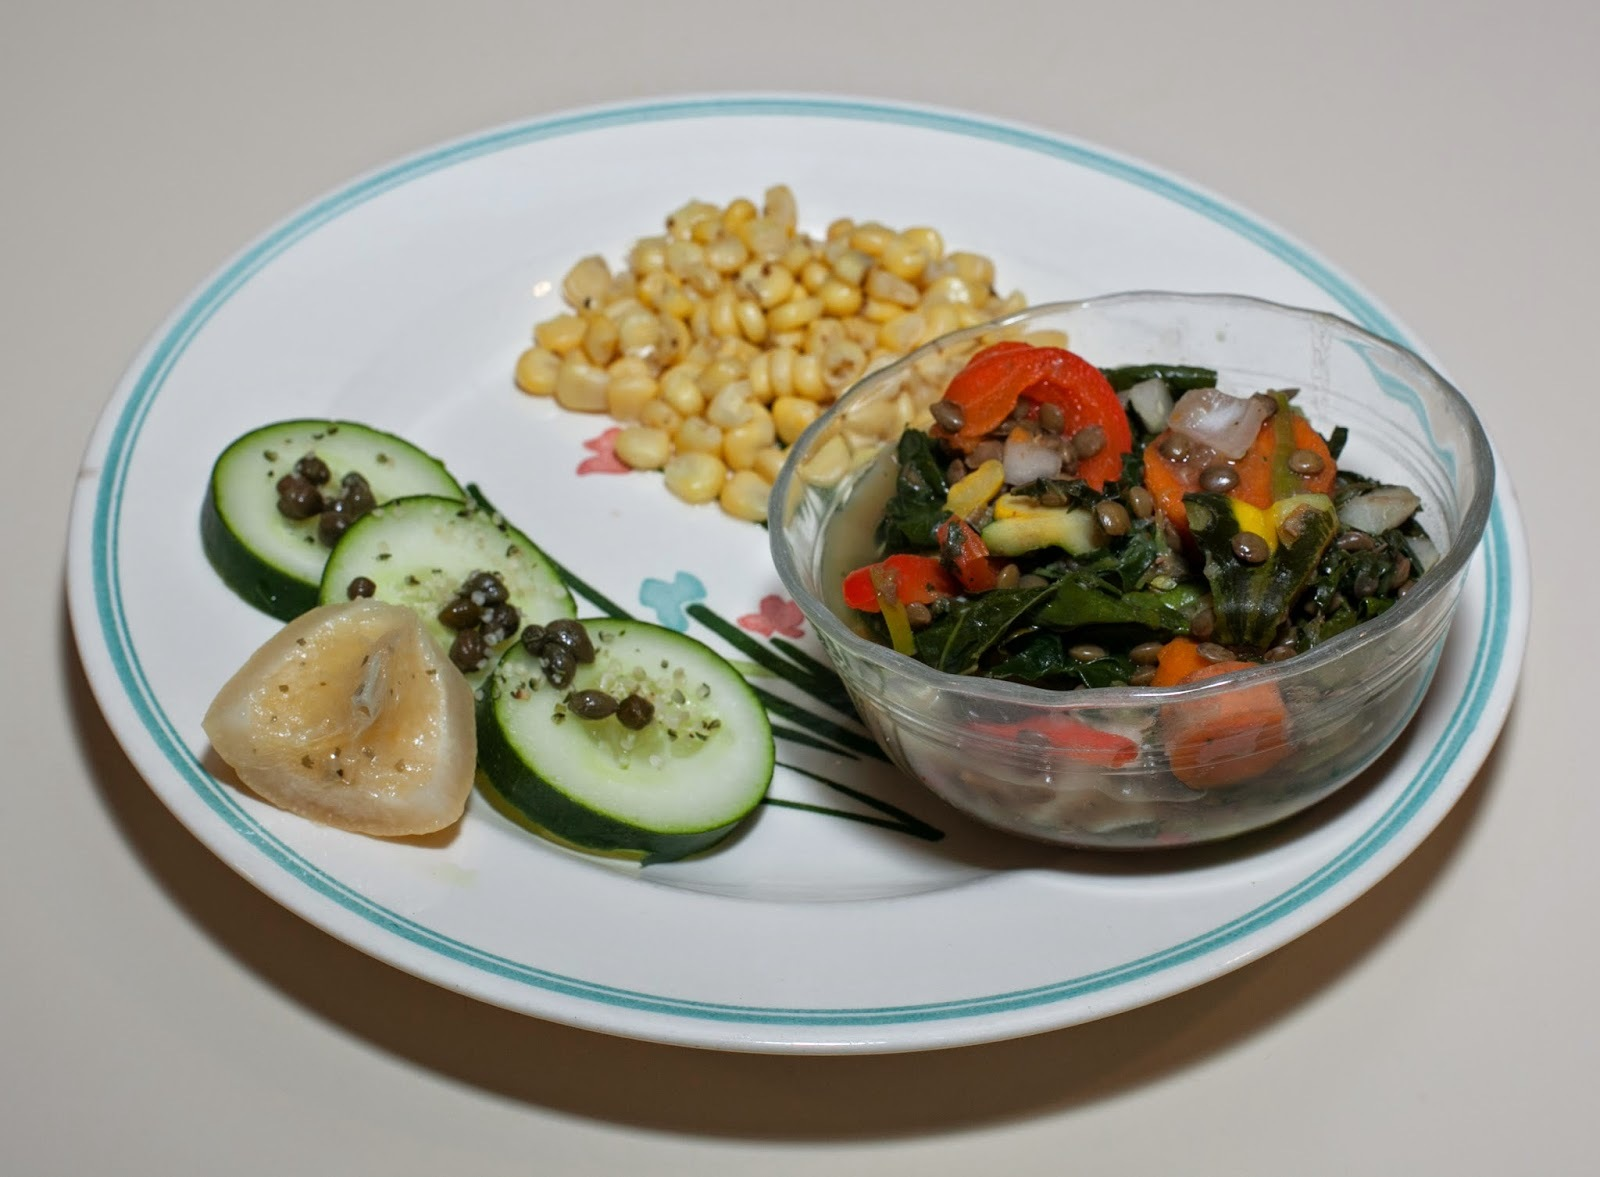 Patty Pan Squash - French Lentil - Kale served with Salad and Corn (Almost No Added Fat)